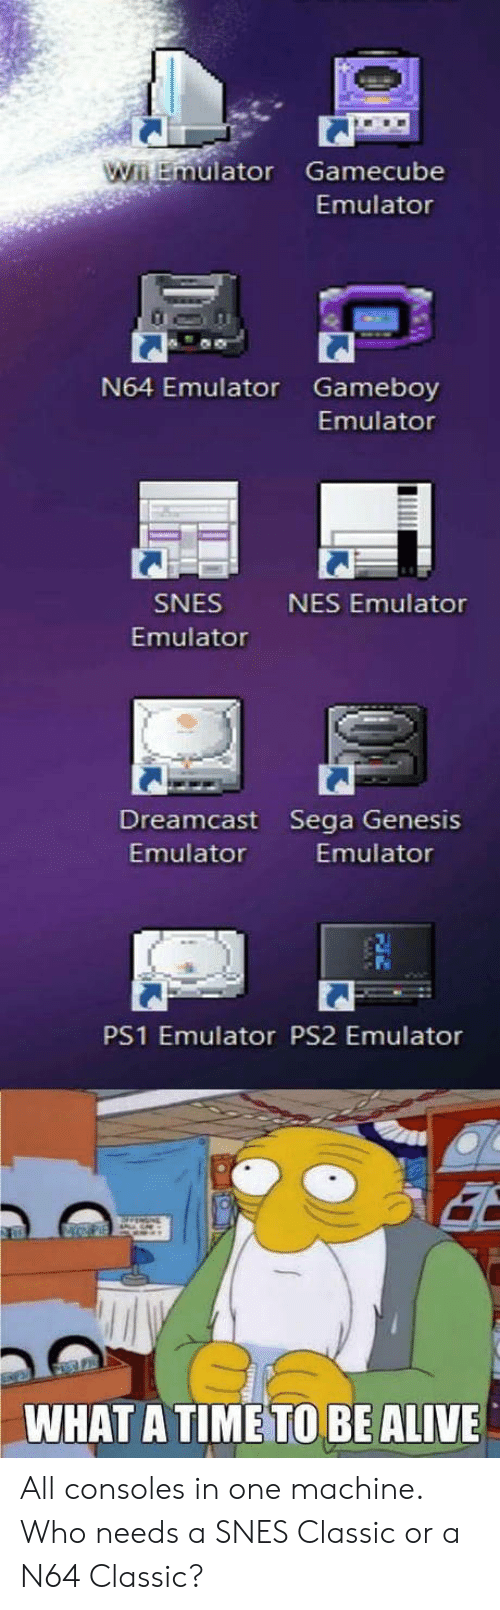 gamecube: uator Gamecube  Emulator  N64 Emulator Gameboy  Emulator  SNES  Emulator  NES Emulator  Dreamcast Sega Genesis  Emulator  Emulator  PS1 Emulator PS2 Emulator  WHAT A TIME TO BE ALIVE All consoles in one machine. Who needs a SNES Classic or a N64 Classic?